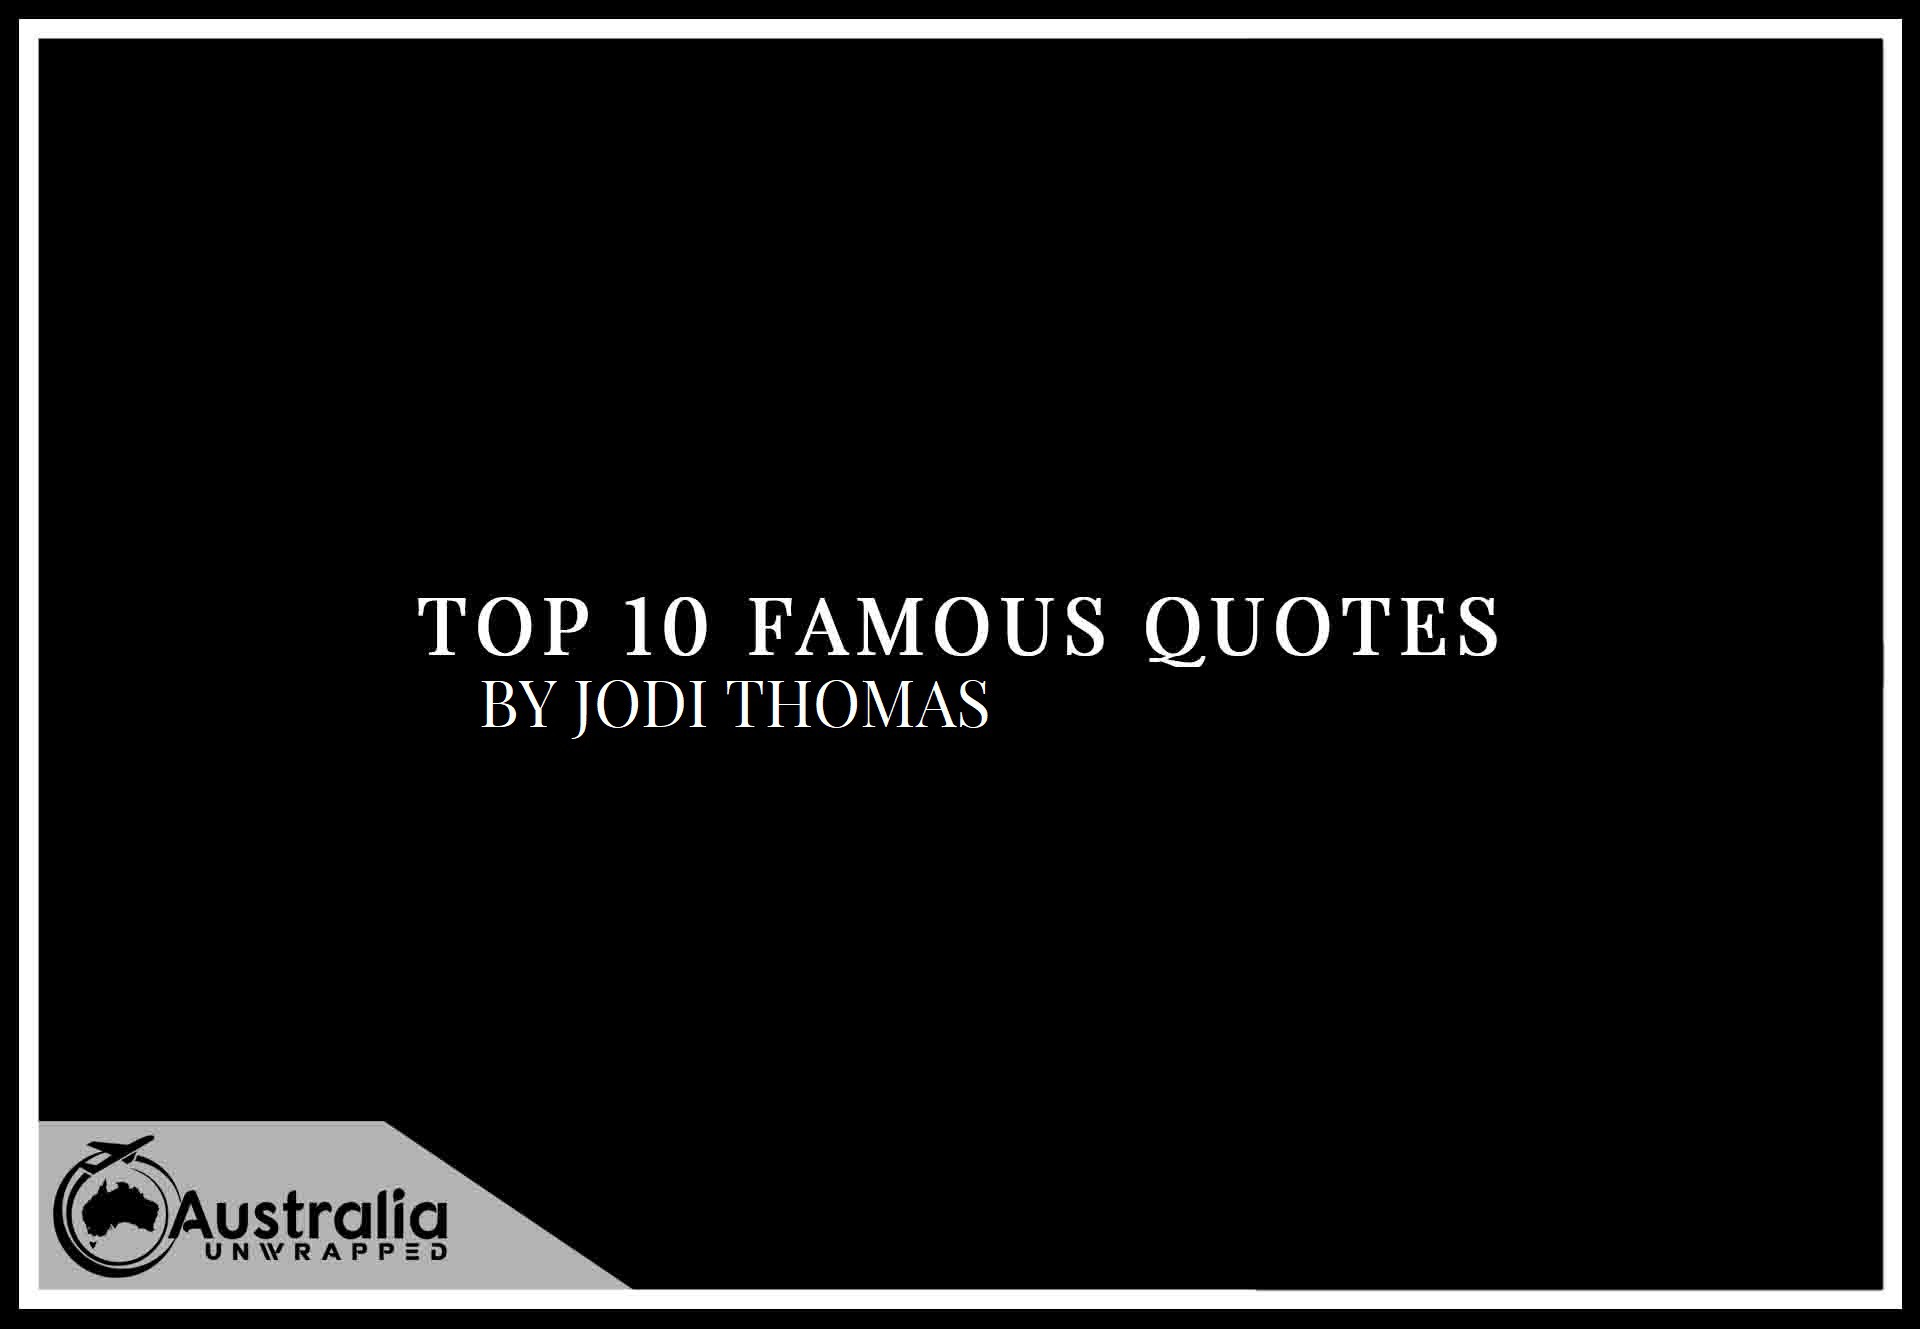 Top 10 Famous Quotes by Author Jodi Thomas